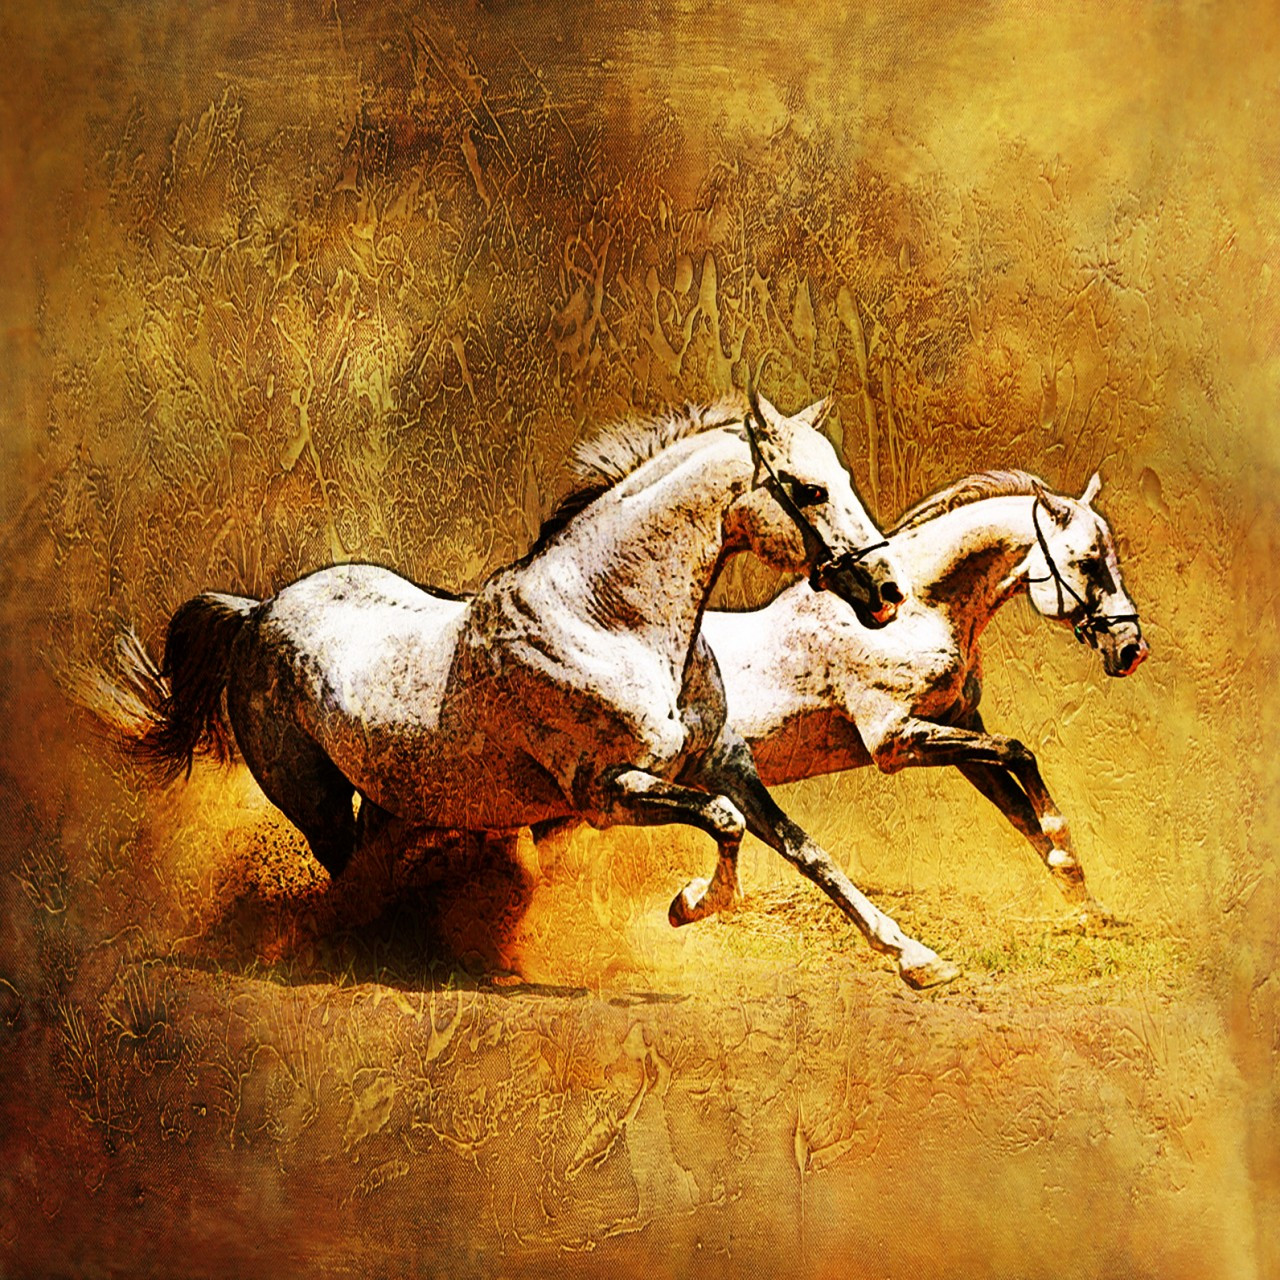 25horse02 24in X 24in 25horse02 2424 Yellow Horse Racing Jockey Horses Canvas Oil Colors Brown Rs 3190